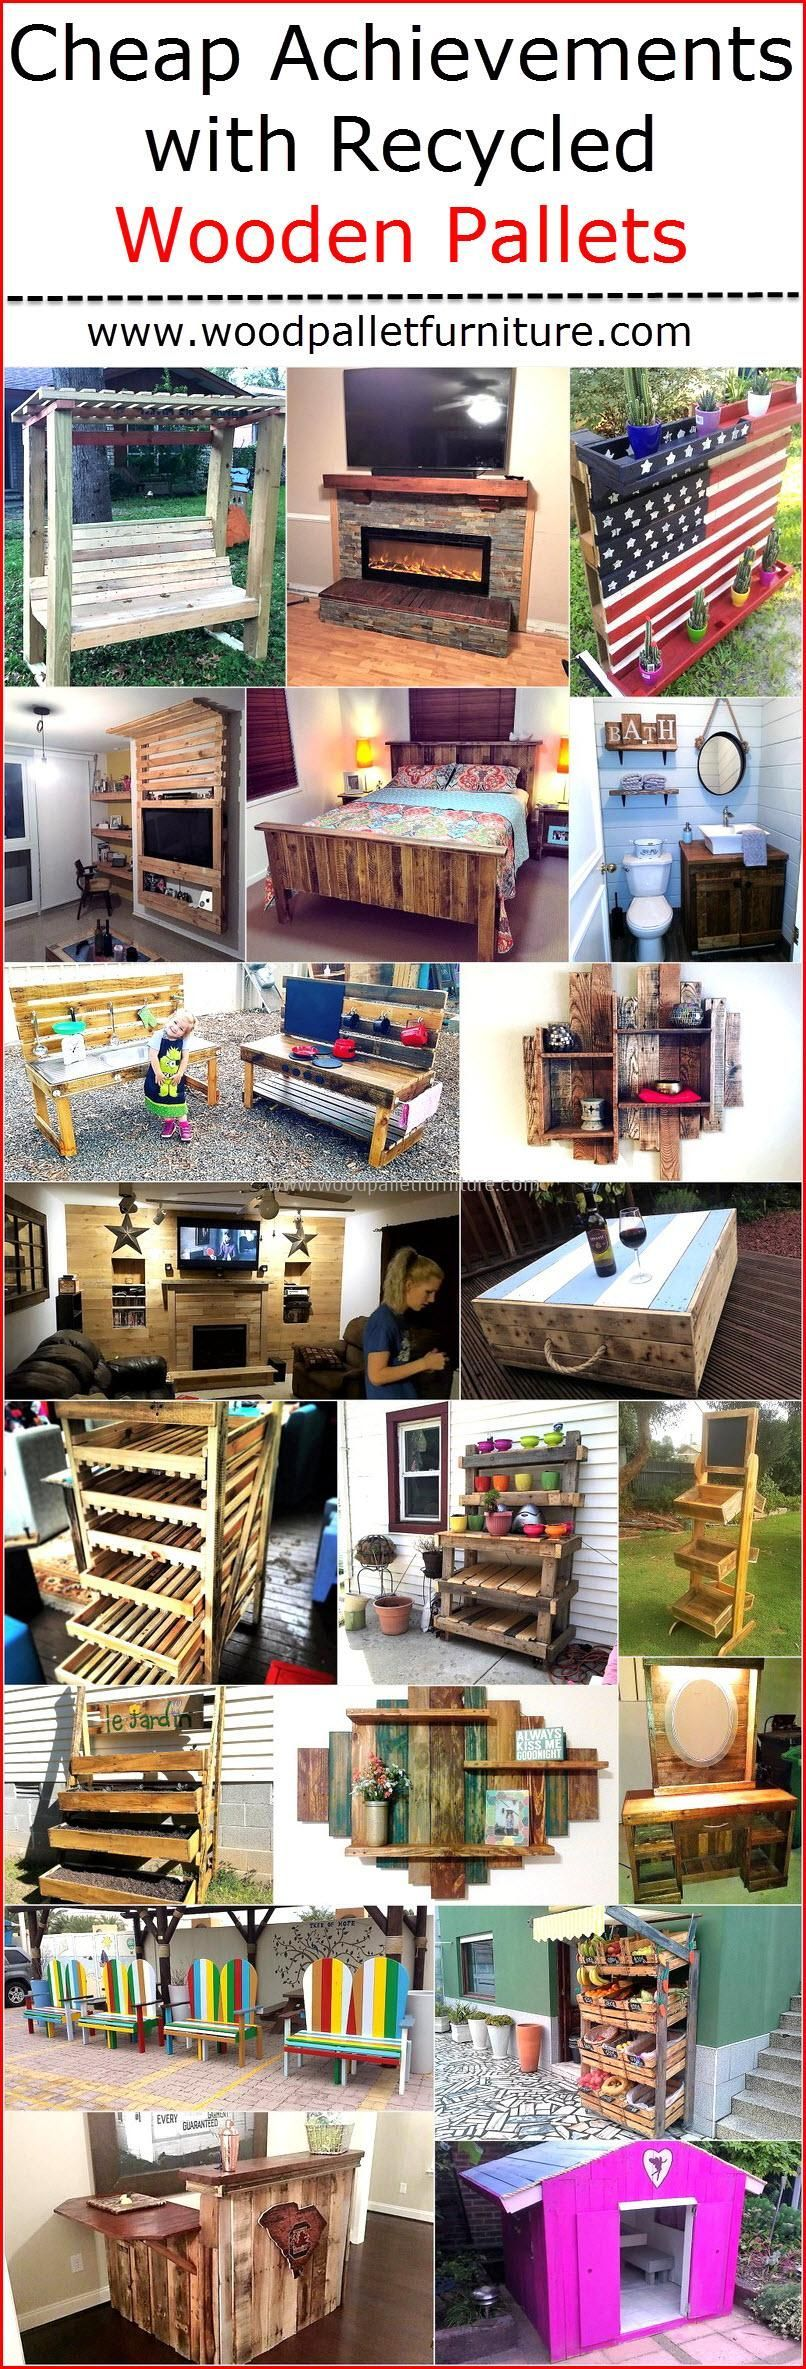 Cheap-achievements-with-recycled-wooden-pallets #